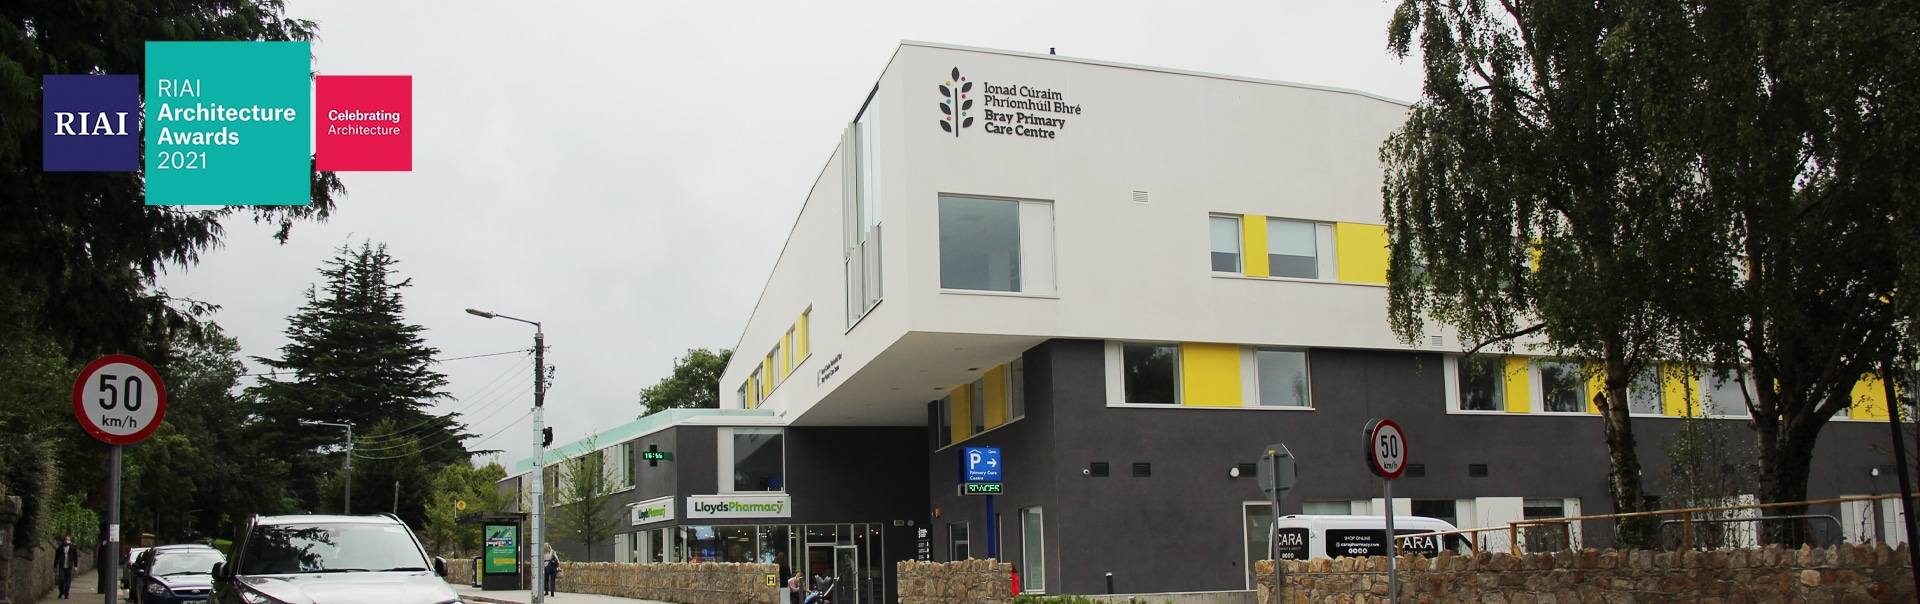 Entrance sign at the RIAI Commended care centre at Bray